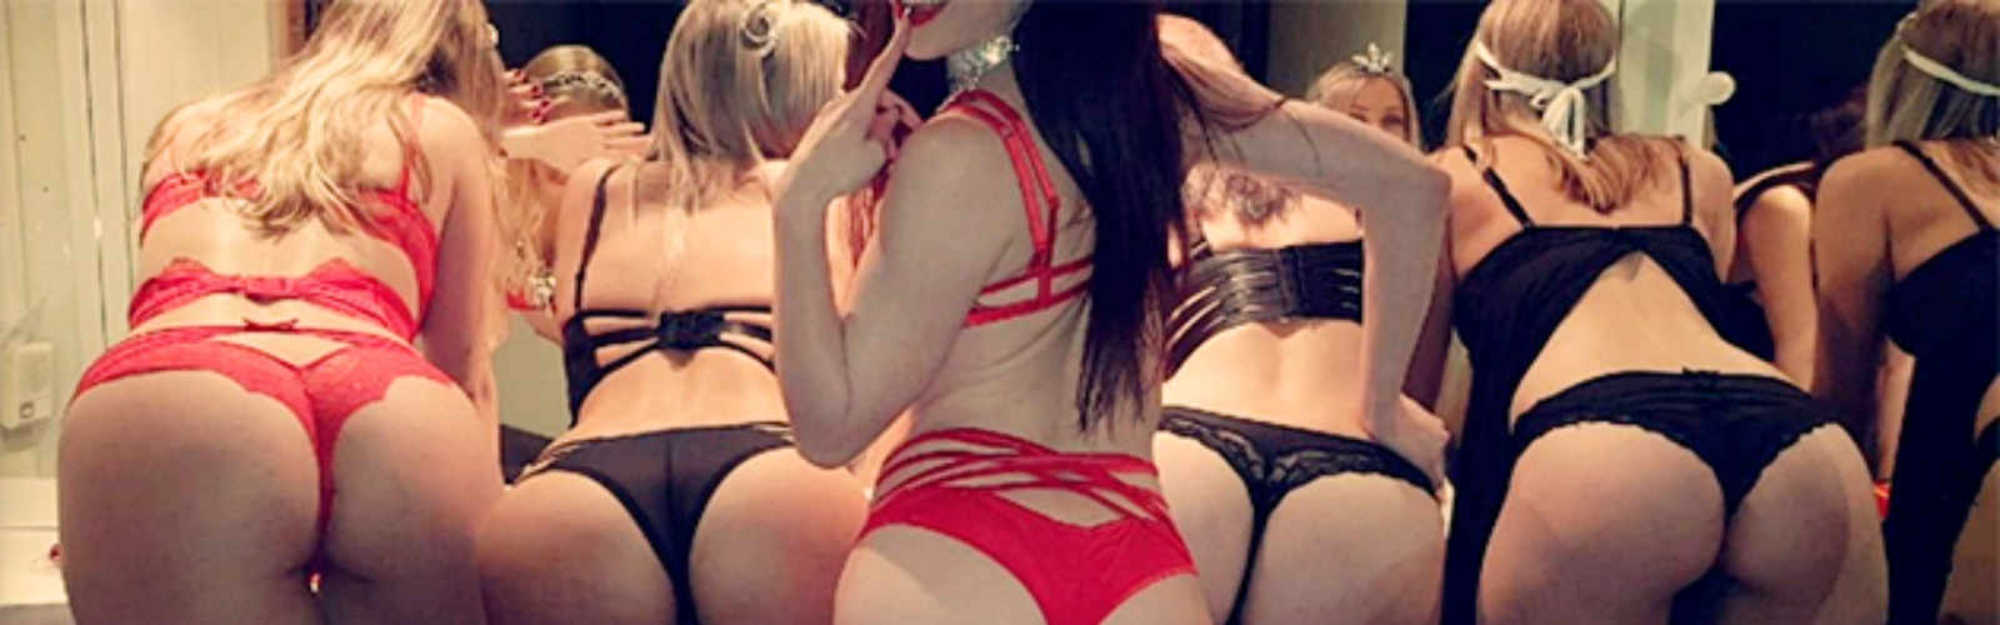 KiwiKlub Swingers Pricing